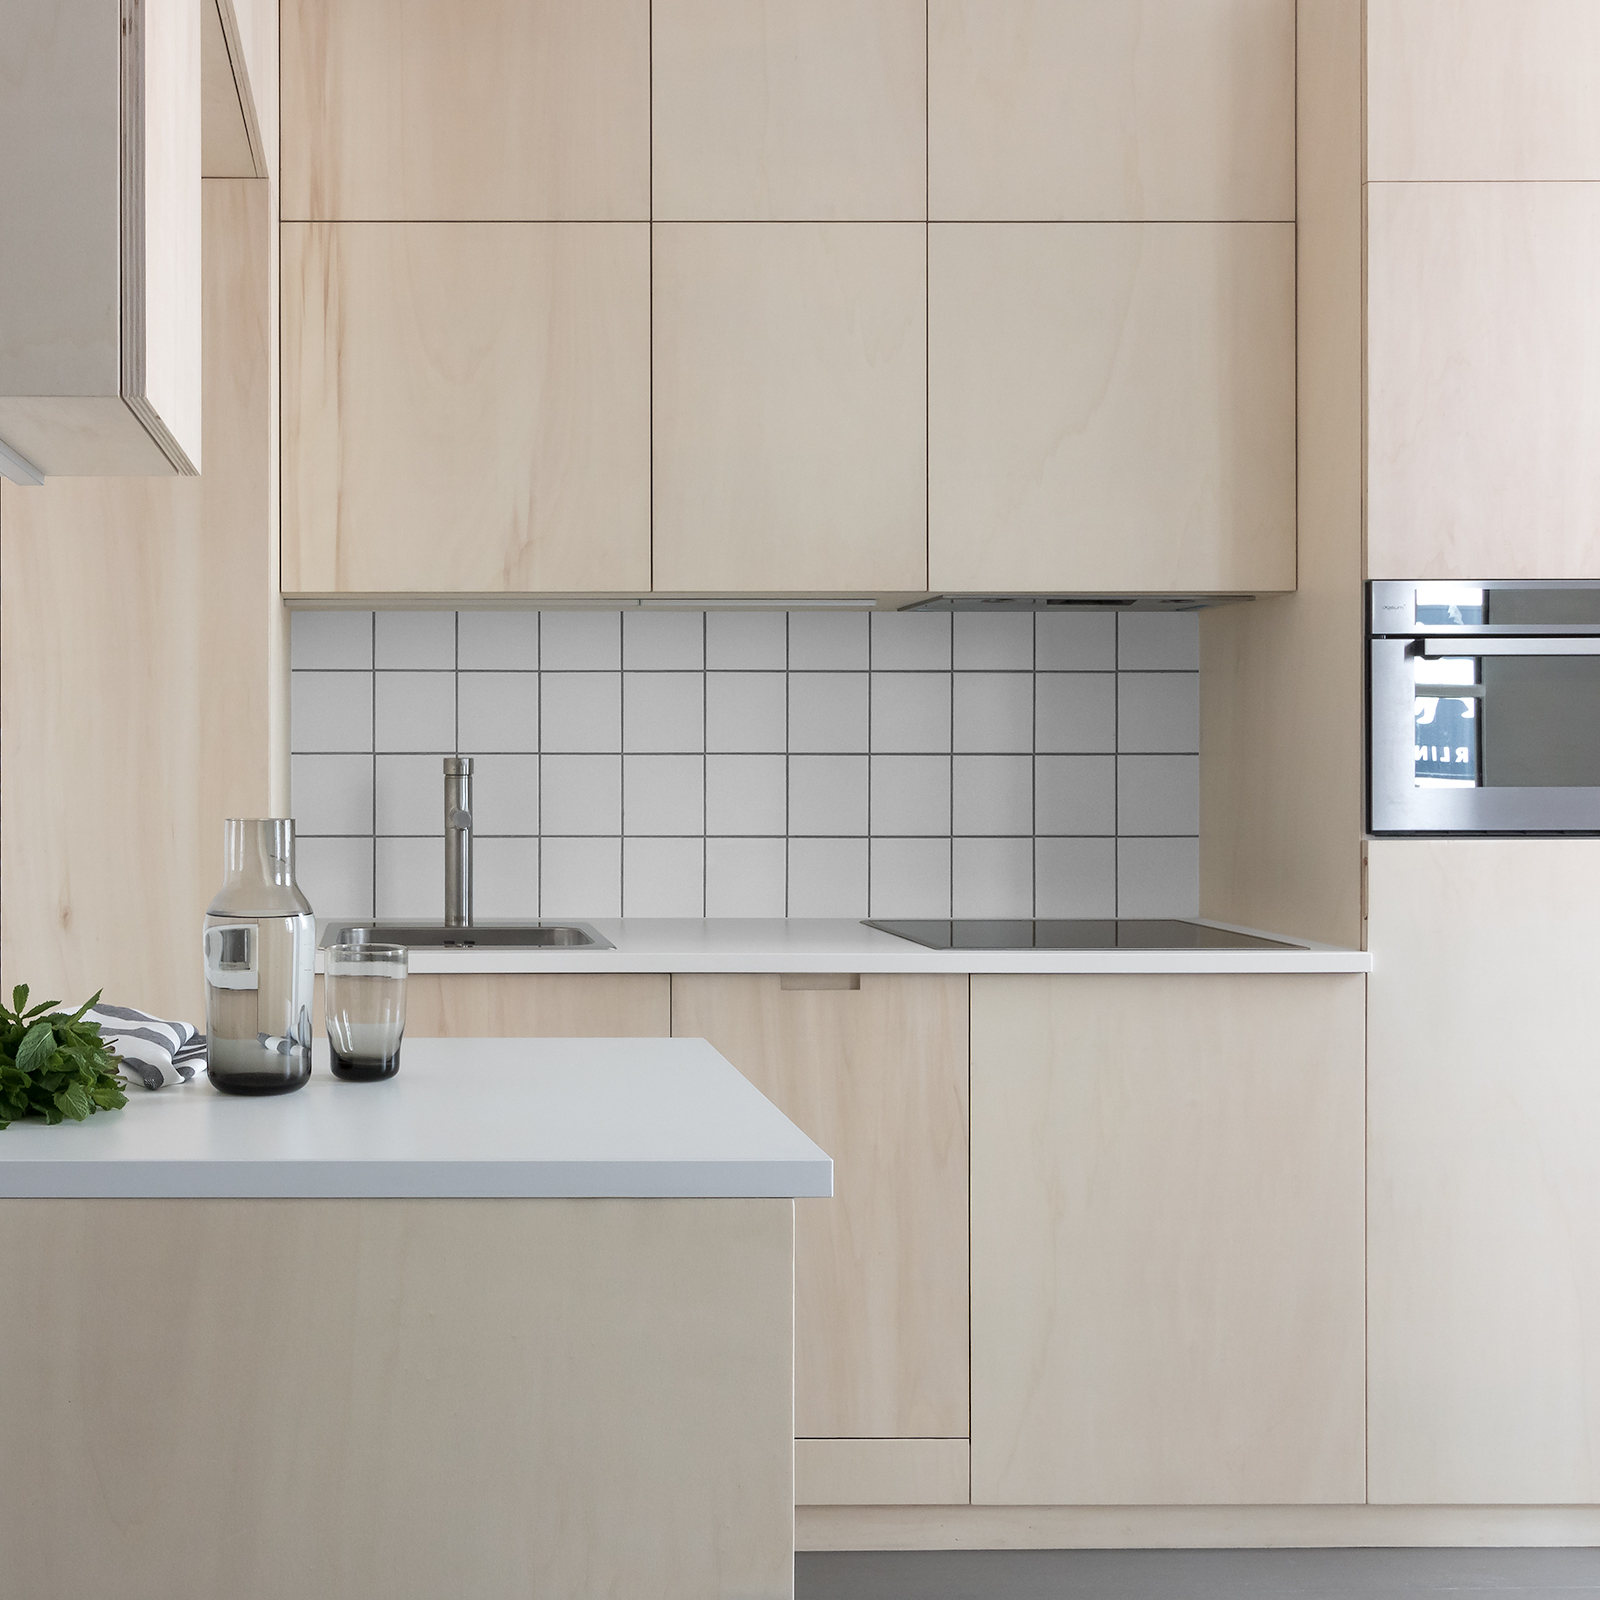 Japanese style, minimal, modern, open-plan, plywood kitchen with grey floor and white tiles